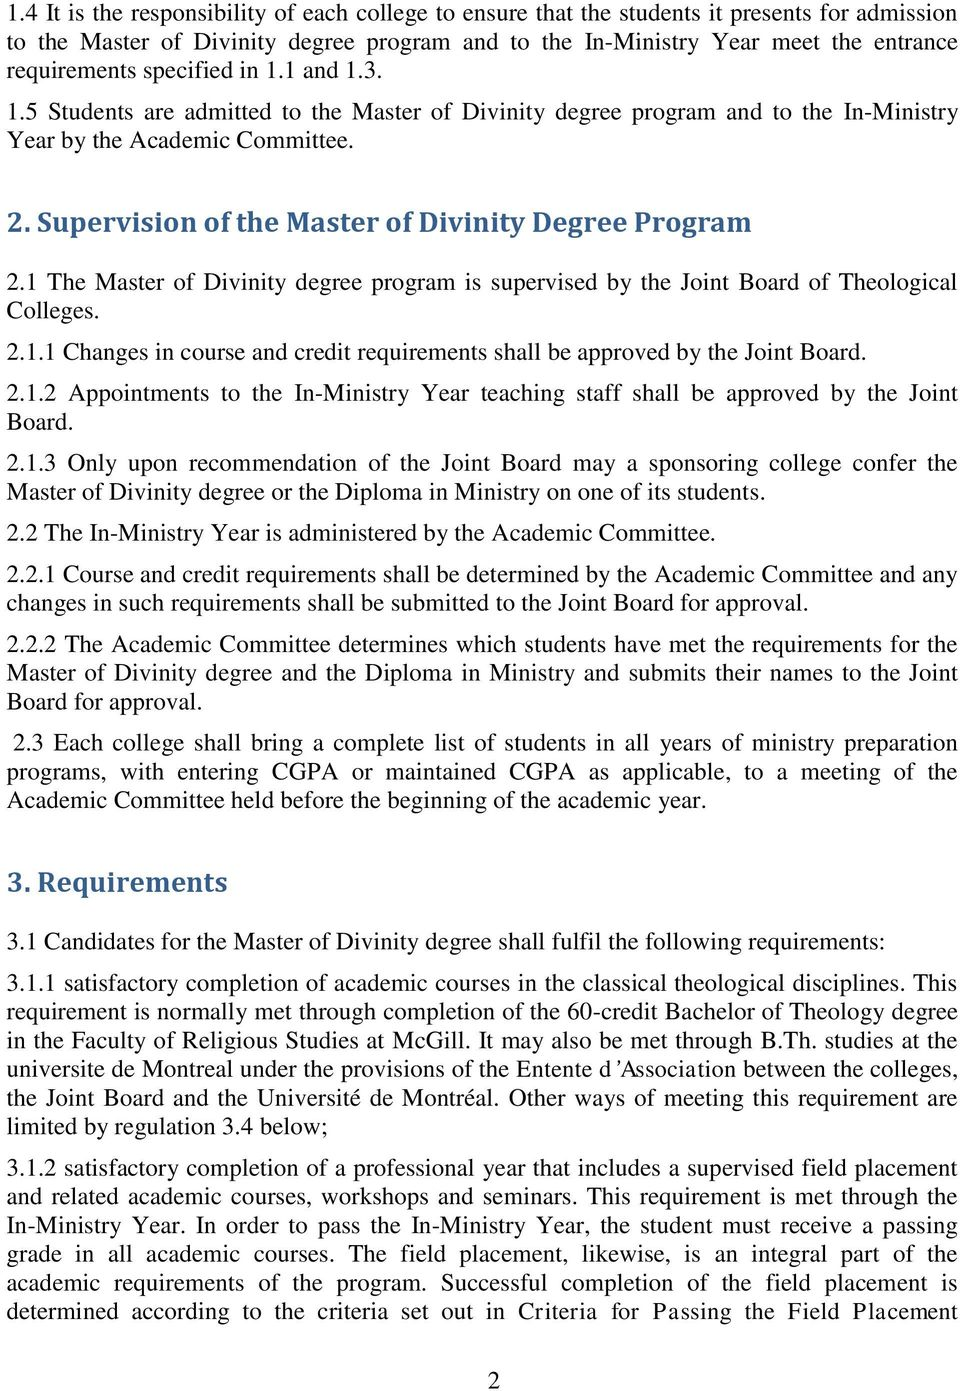 Supervision of the Master of Divinity Degree Program 2.1 The Master of Divinity degree program is supervised by the Joint Board of Theological Colleges. 2.1.1 Changes in course and credit requirements shall be approved by the Joint Board.